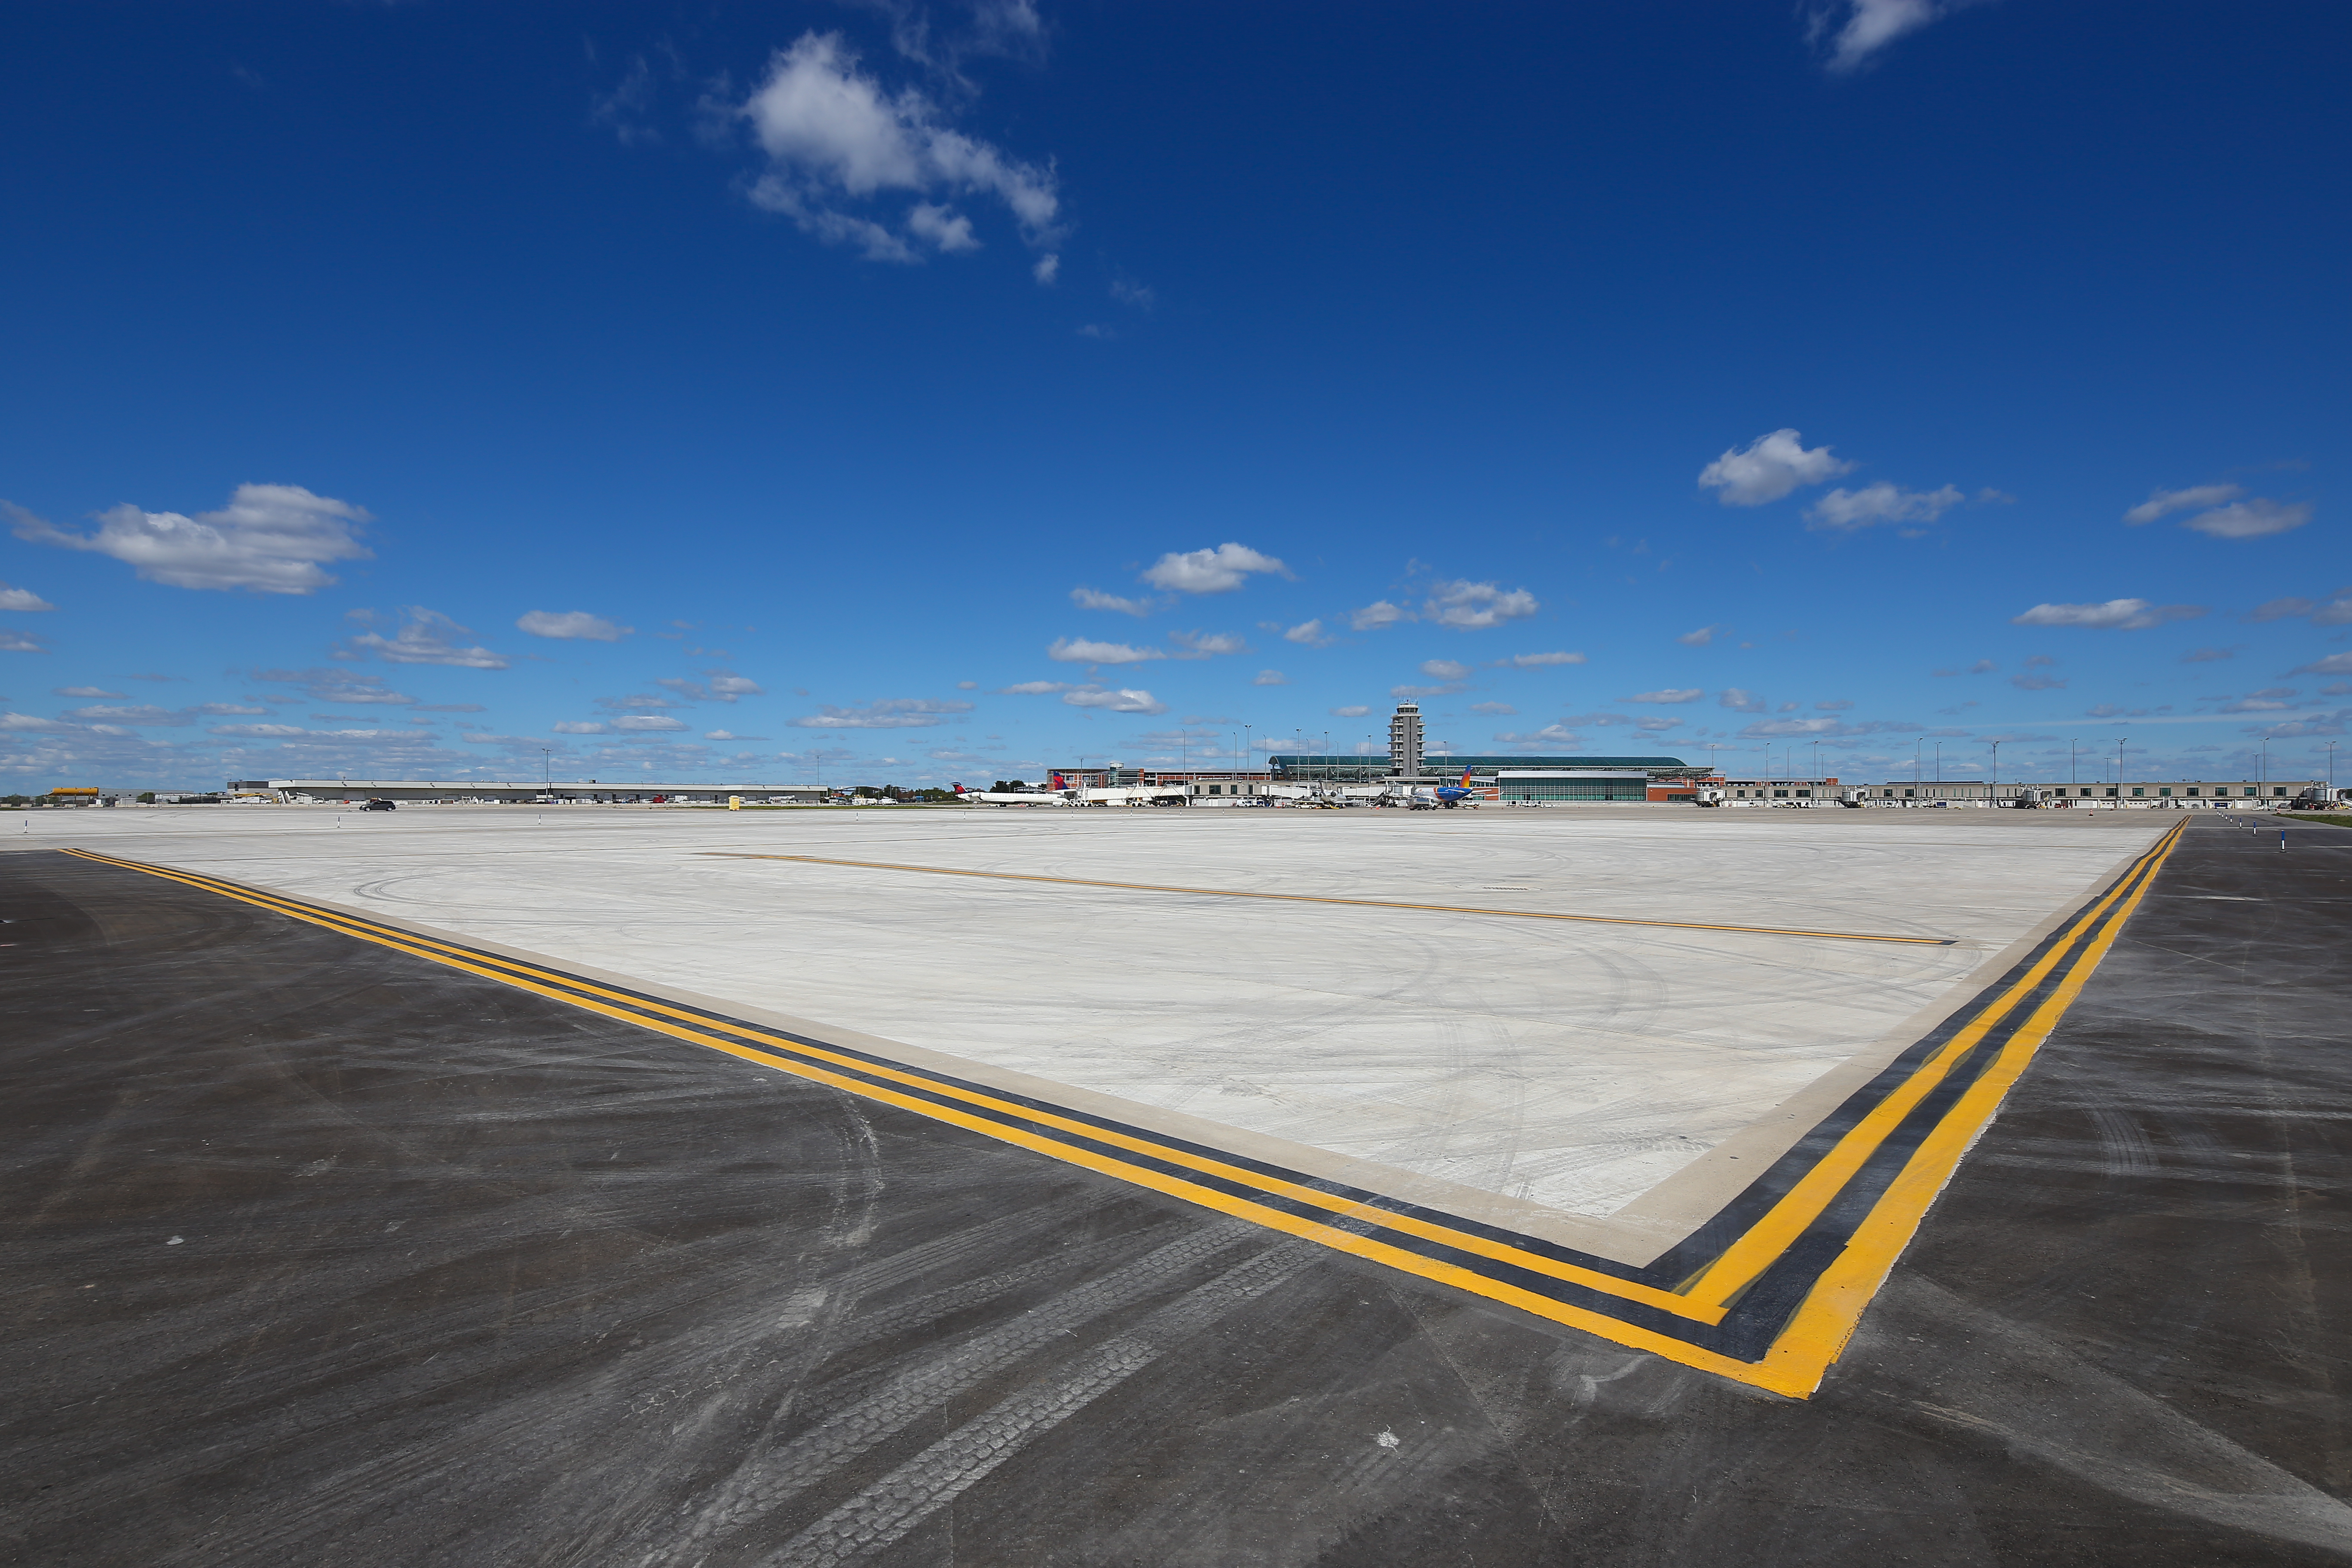 Ford Airport's Terminal Reconstruction and Expansion Project Receives ACEC Engineering Excellence Merit Award